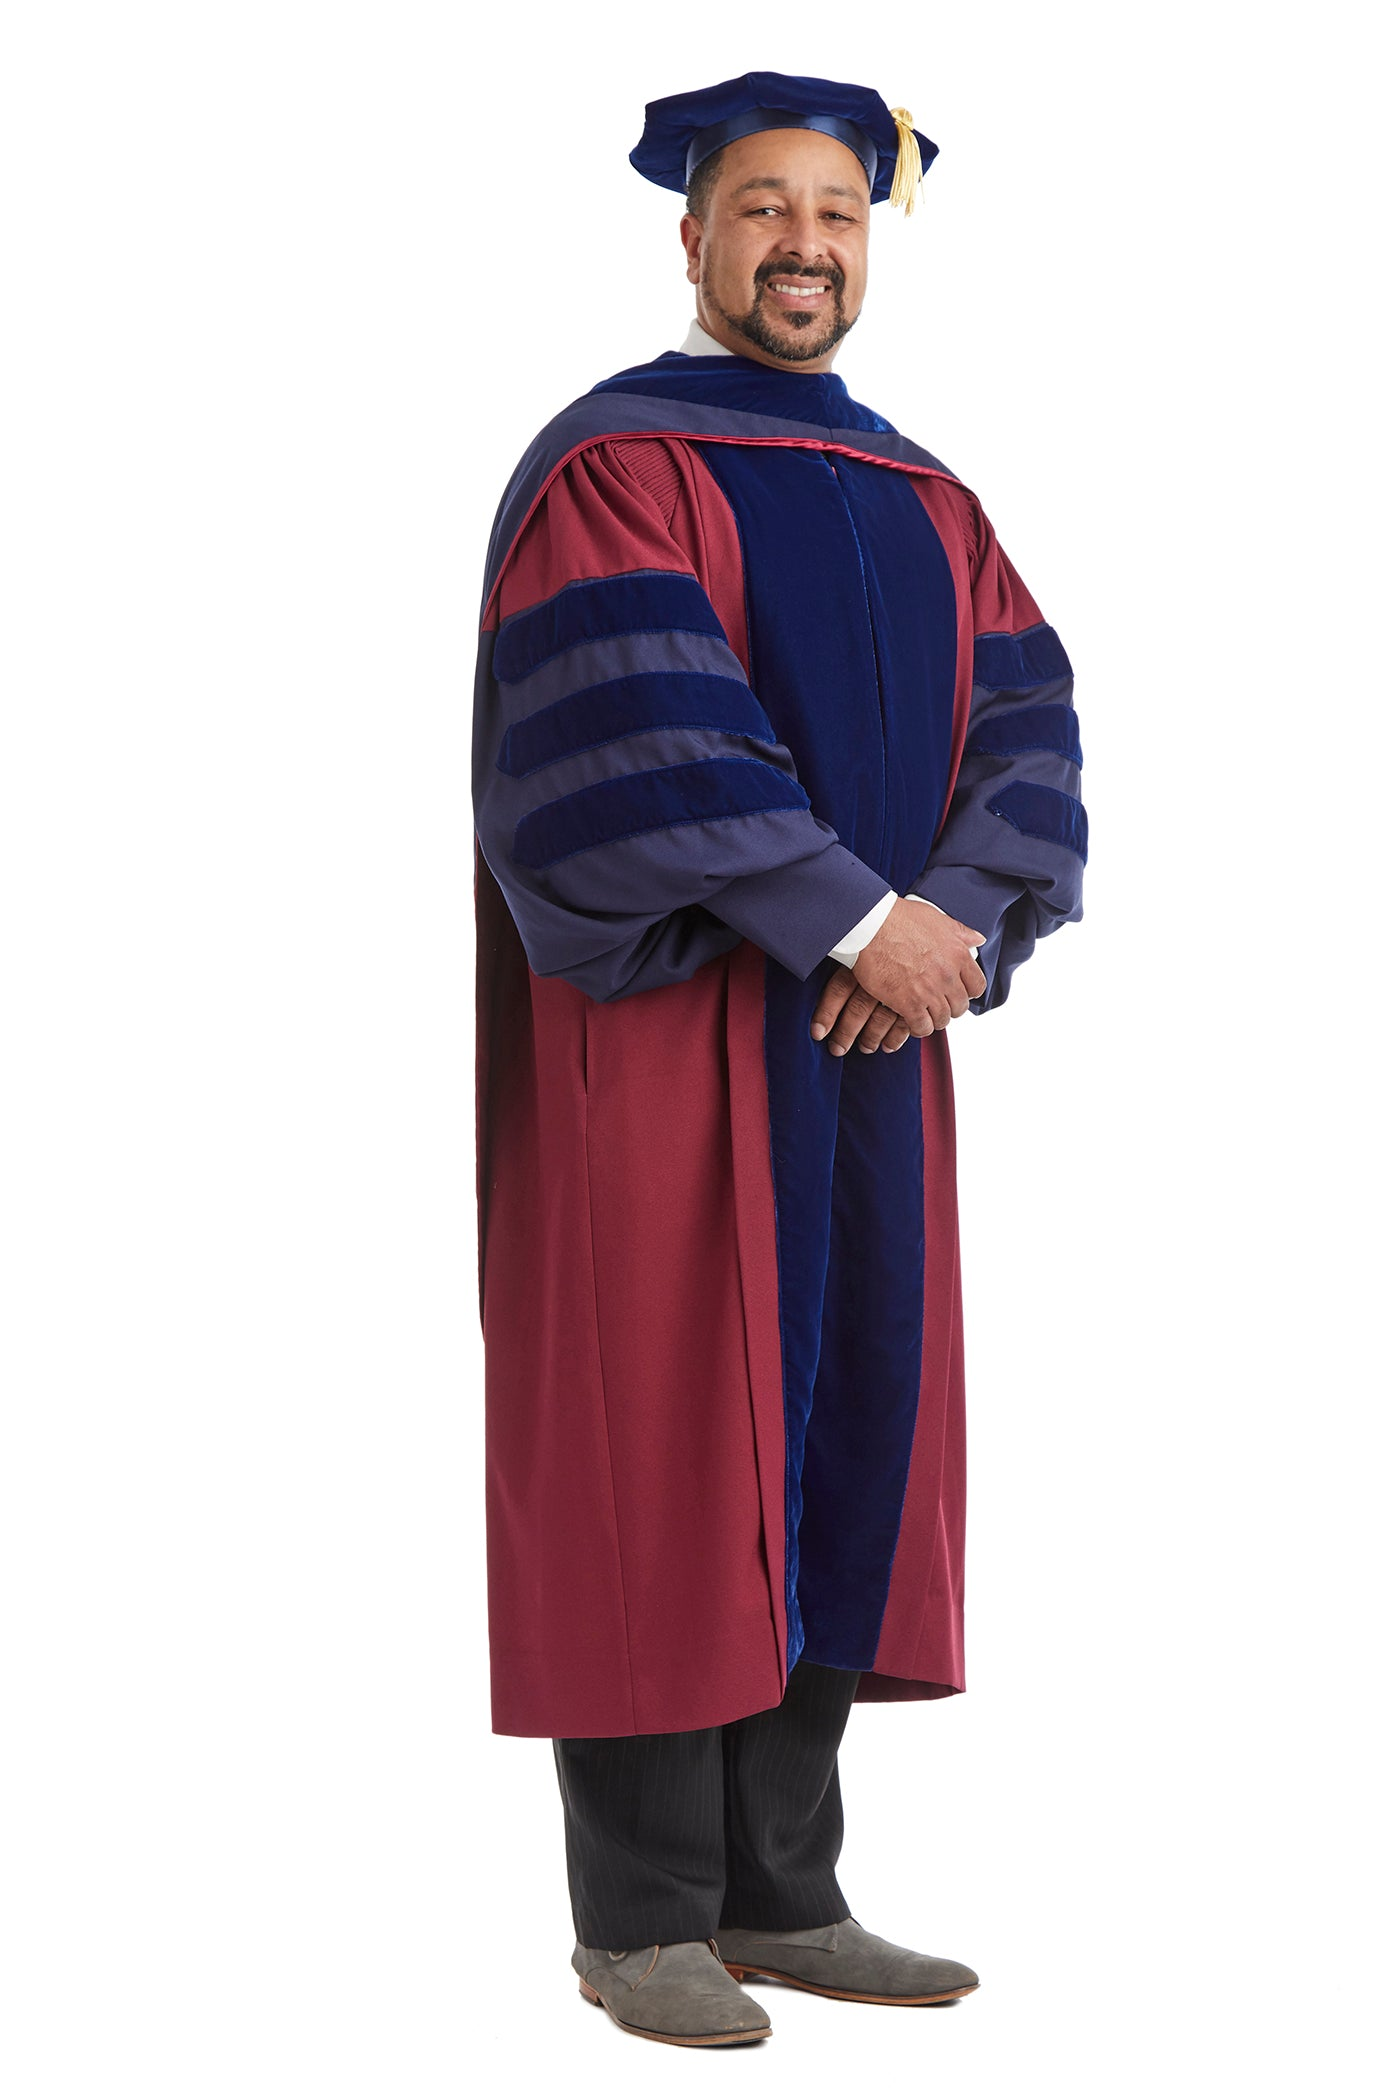 University of Pennsylvania Doctoral Regalia Rental Set. Doctoral Gown, Hood, and Cap / Tam with Tassel